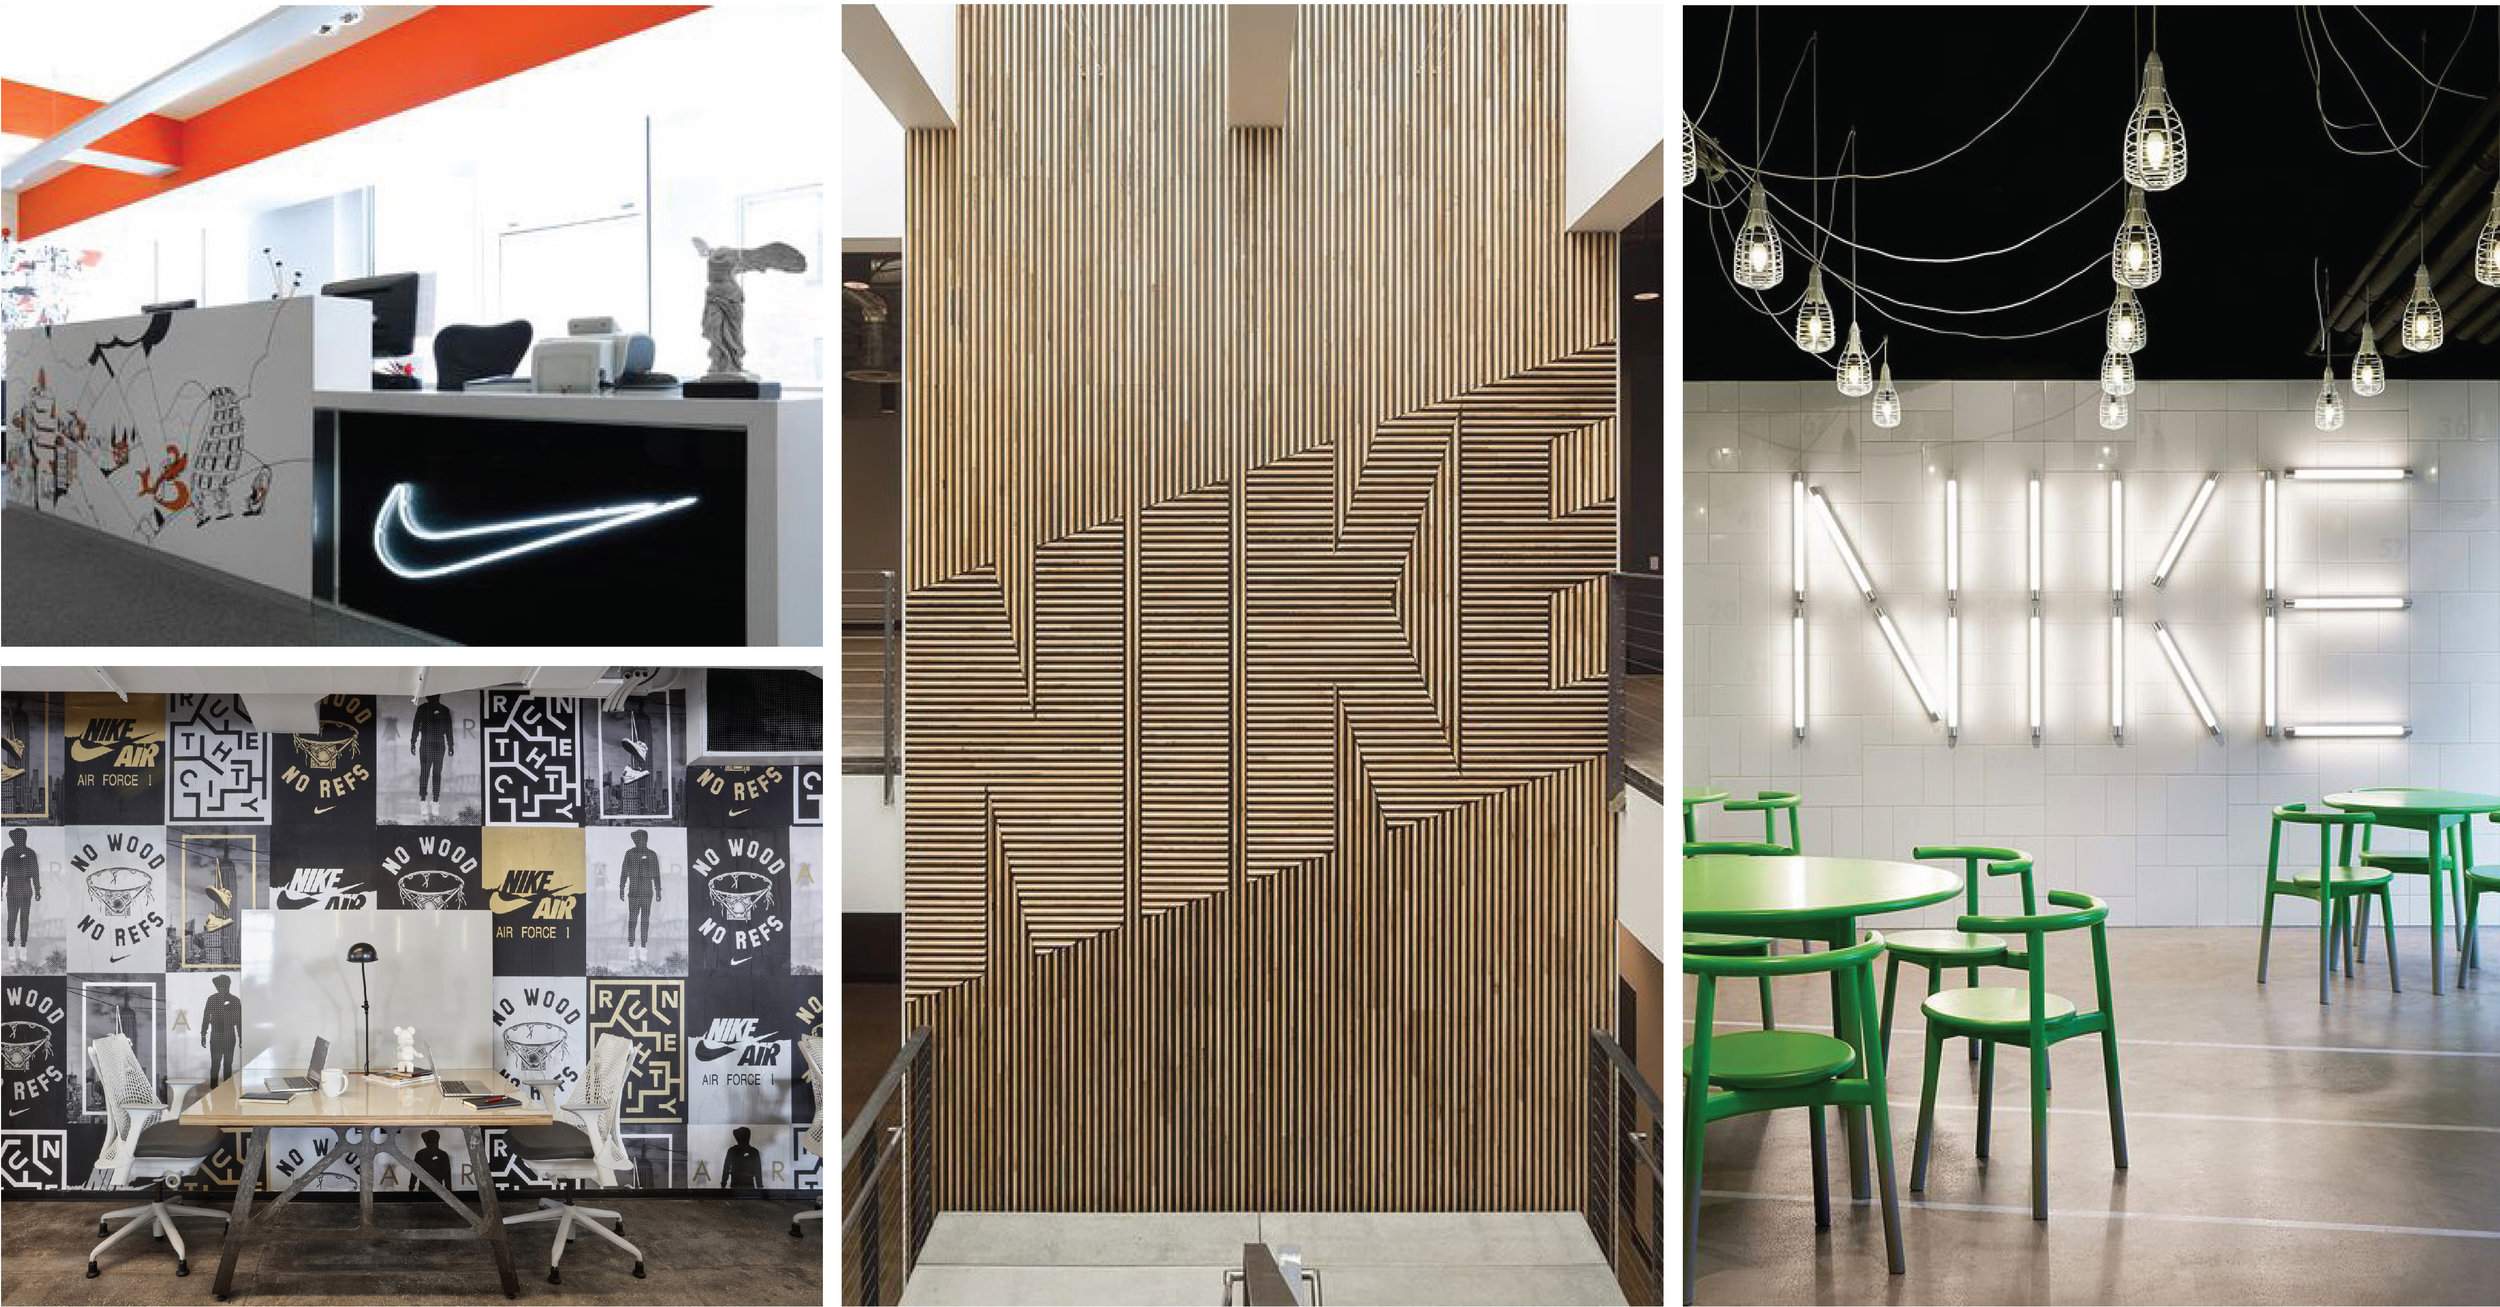 The various expressions of the Nike brand in their workplaces. Top left: Rosie Lee; Bottom left: Nike by o+a; Middle: Fieldwork Design & Architecture; Right: Workshop of Wonders.(designs by others)